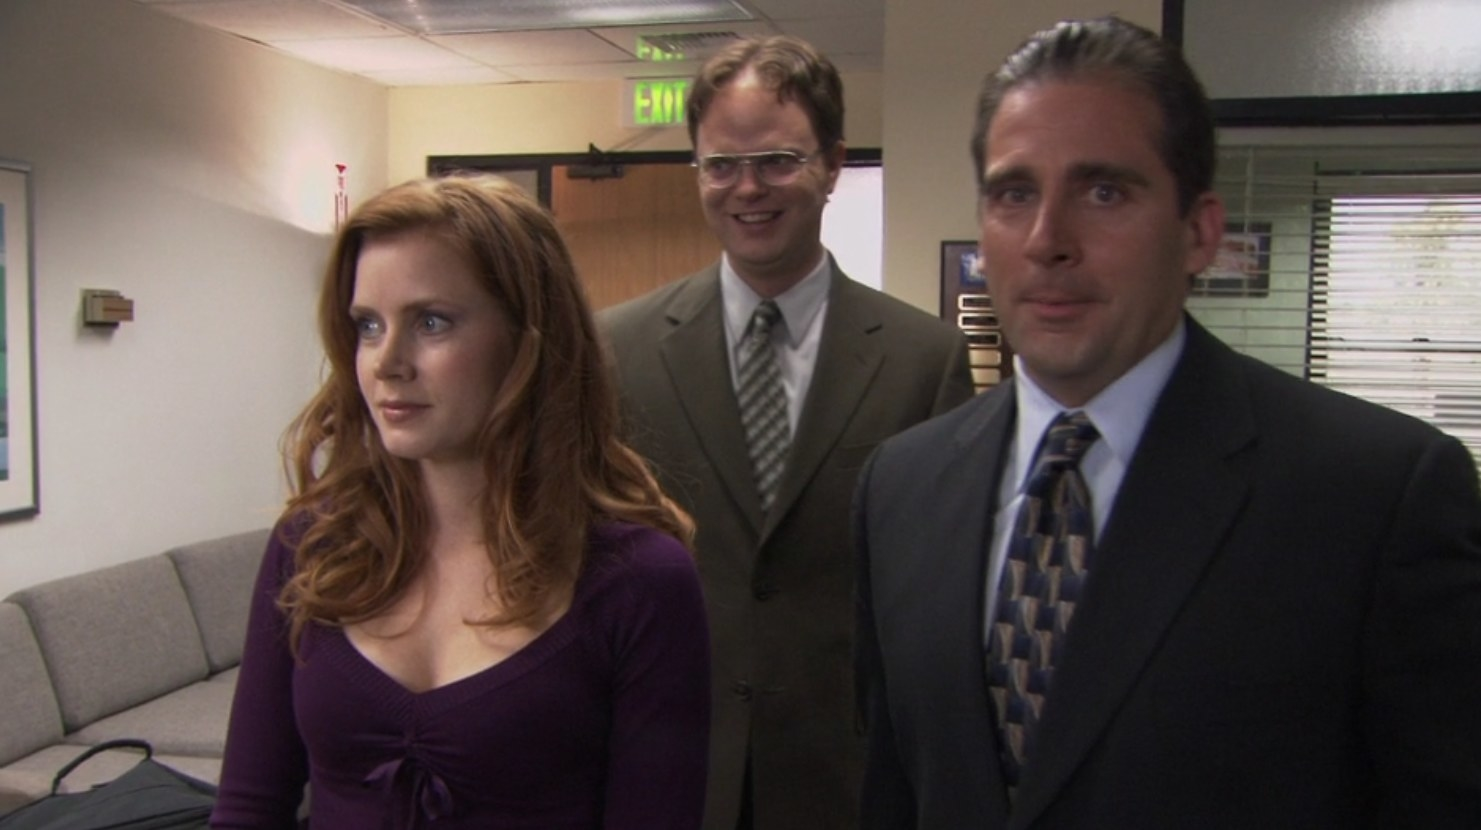 Amy Adams' character Katy stands in front of a smiling Dwight and an awkward Michael